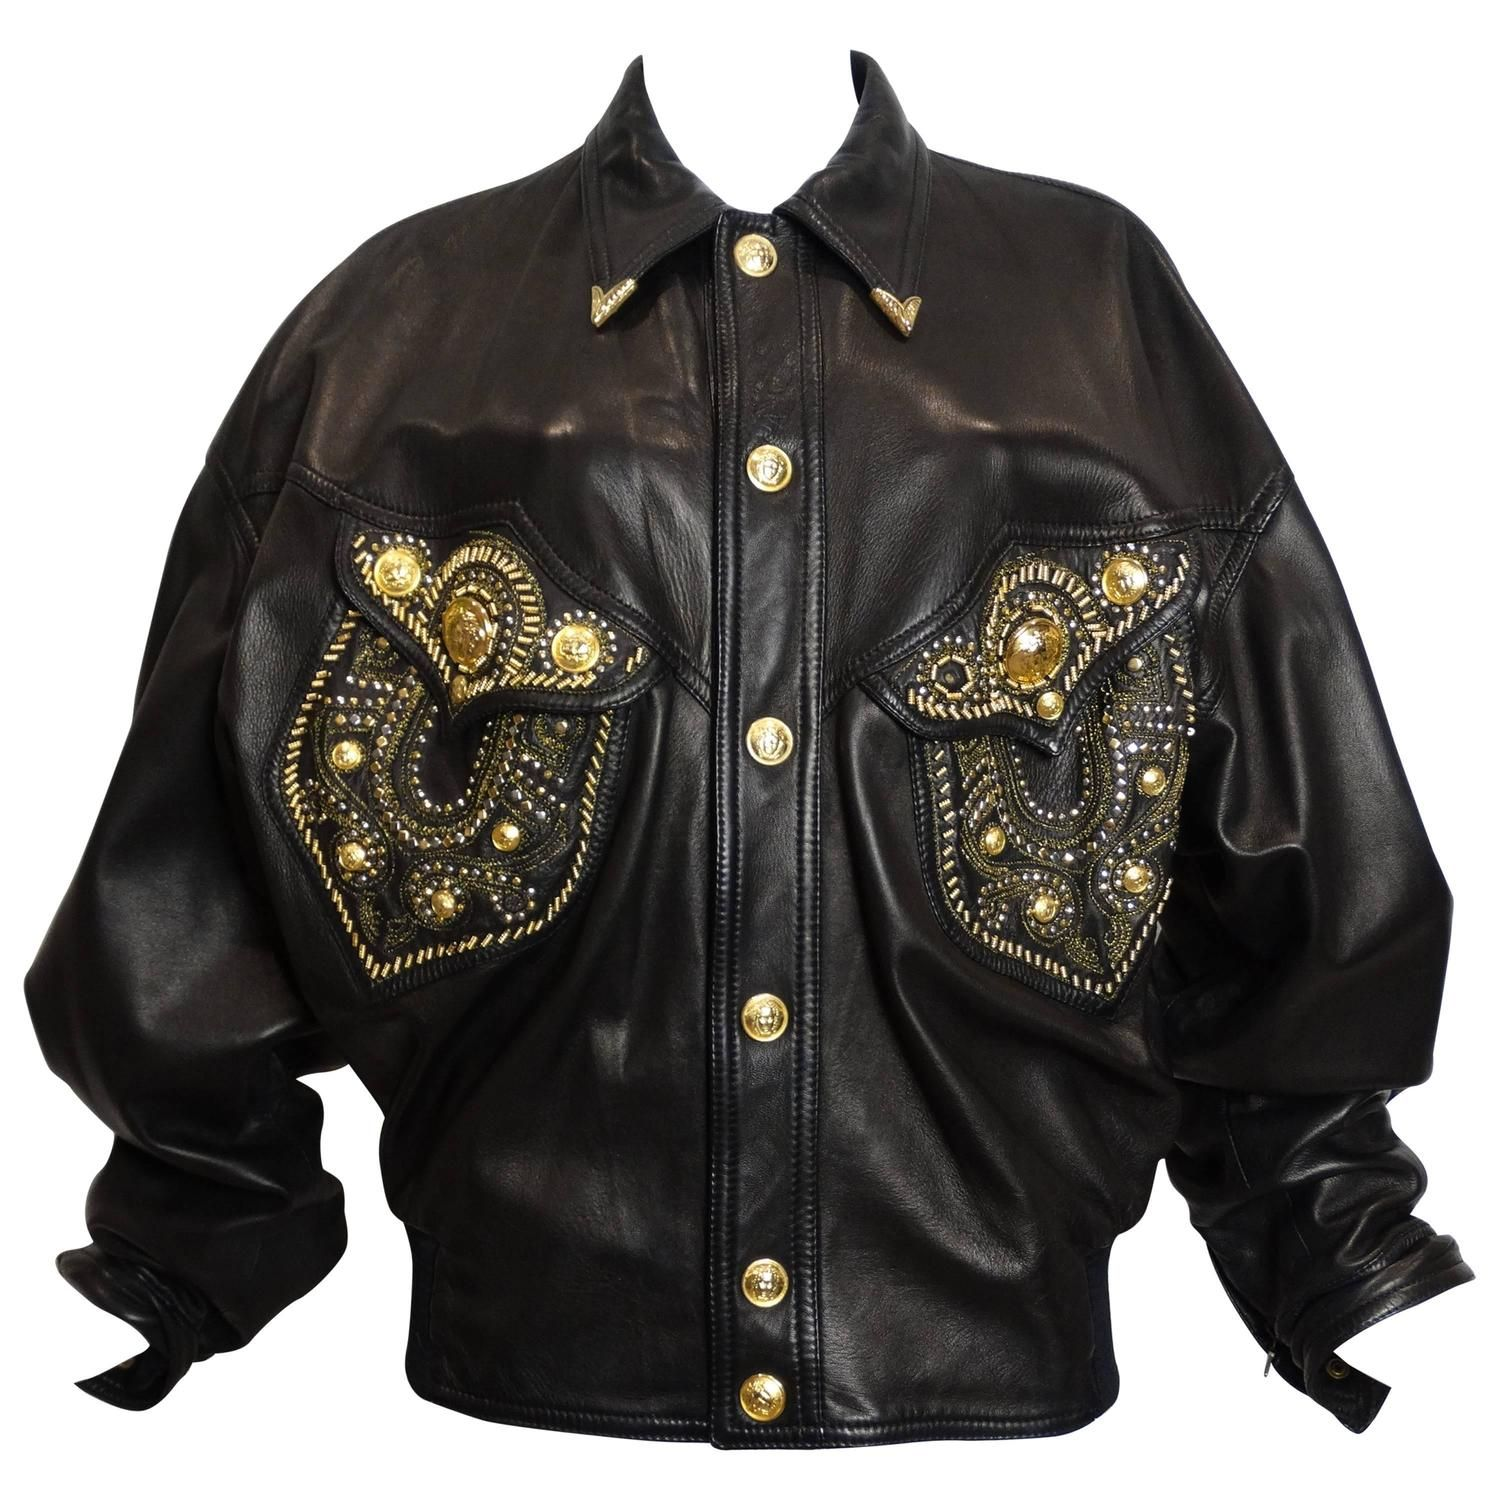 1990s Gianni Versace Couture Motorcycle Jacket Versace Couture Gianni Versace Versace Jacket